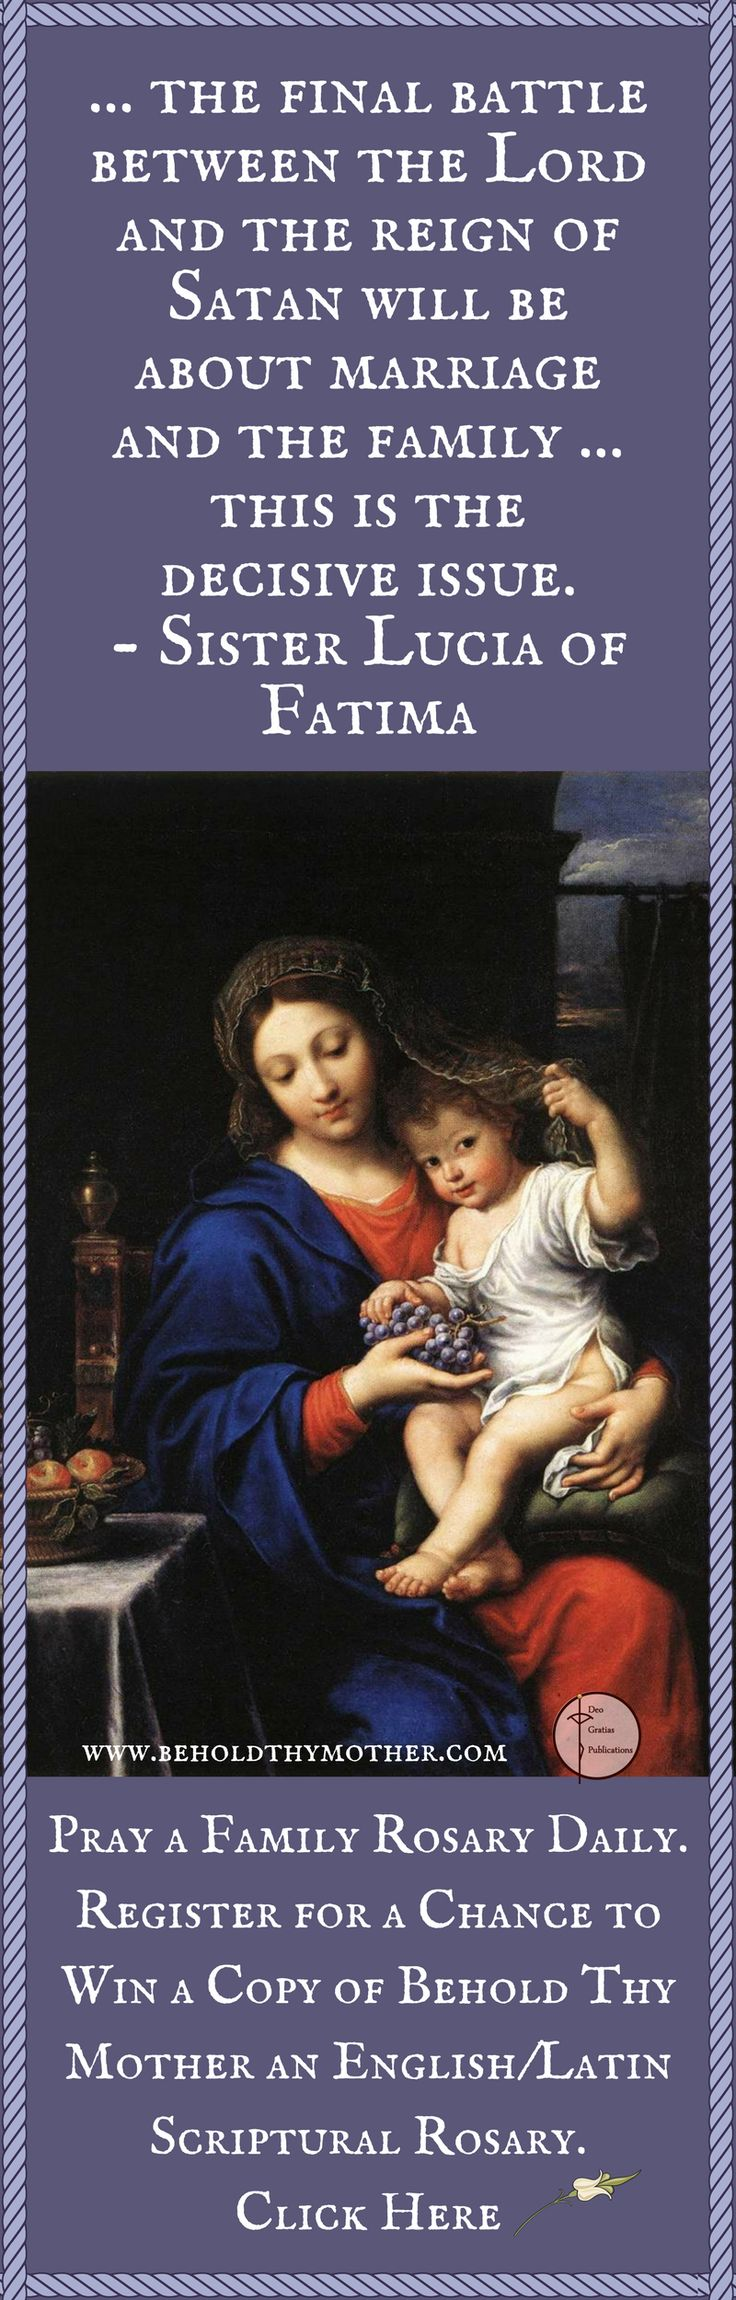 """Pierre Mignard painting. Register for a chance to win a free copy of """"Behold Thy Mother"""" and English/Latin Scriptural Rosary book."""